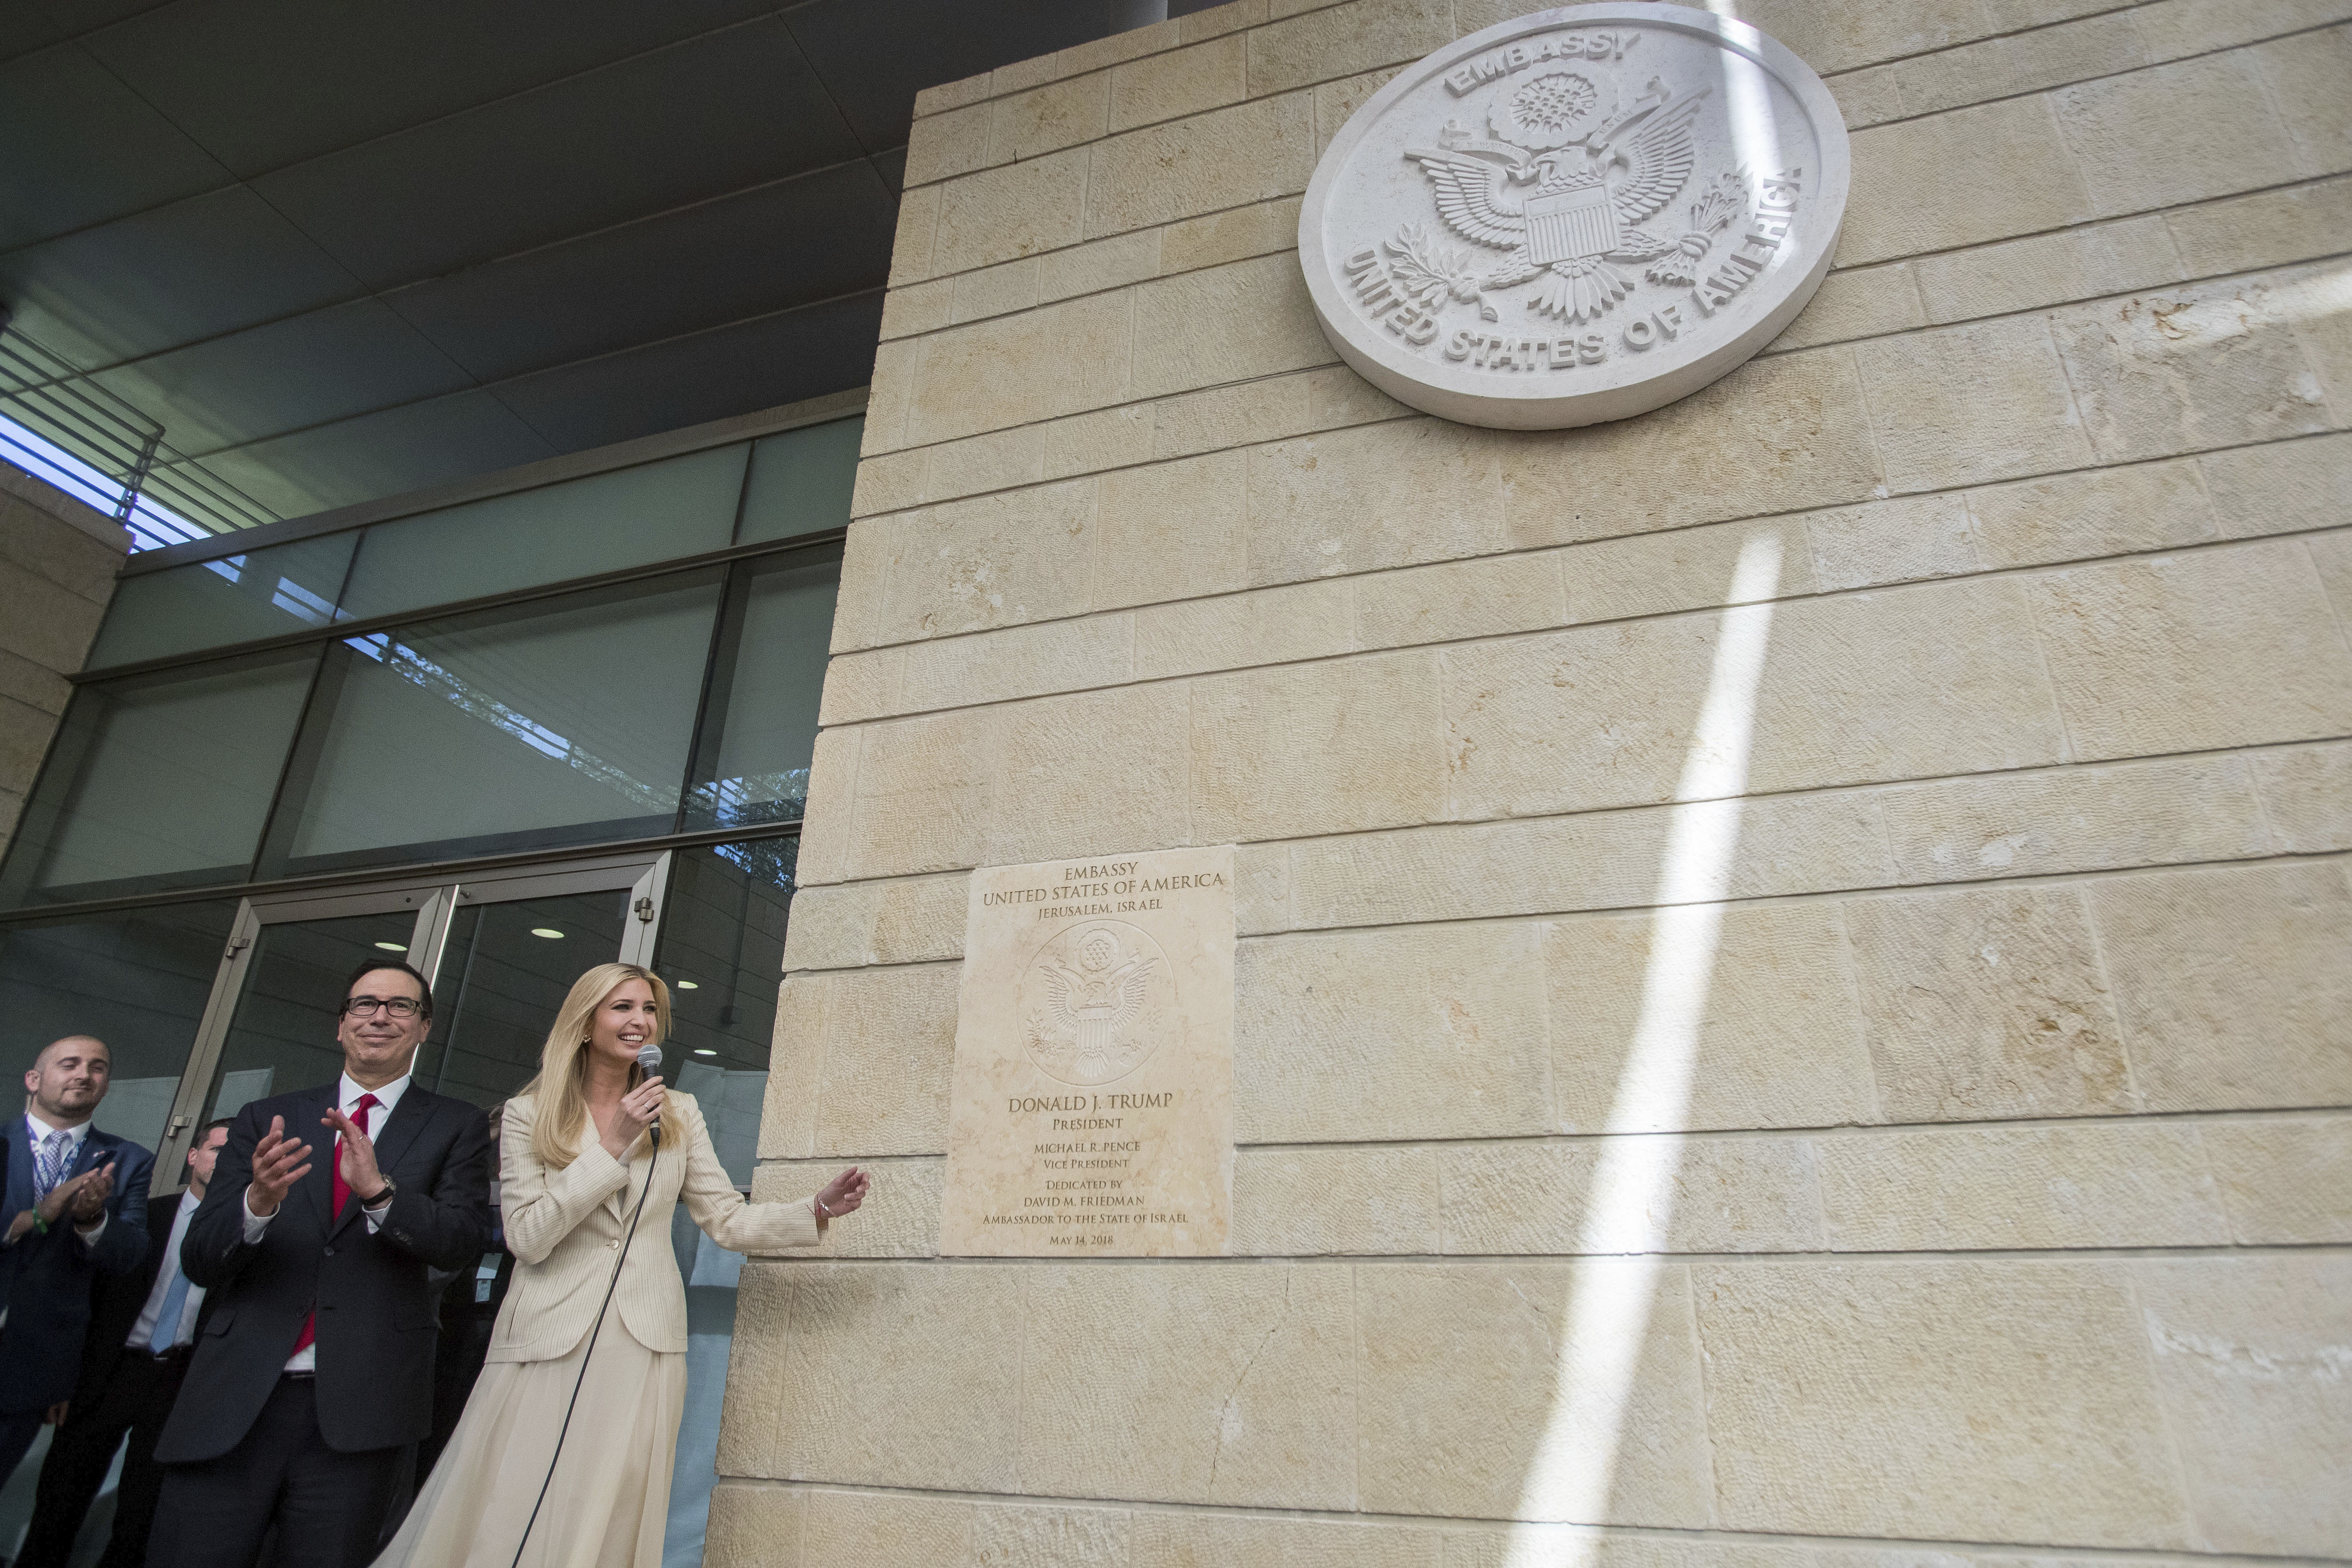 U.S. President Donald Trump's daughter Ivanka, right, and U.S. Treasury Secretary Steve Mnuchin during the opening ceremony of the new US embassy in Jerusalem, Monday, May 14, 2018. Amid deadly clashes along the Israeli-Palestinian border, President Donald Trump's top aides and supporters on Monday celebrated the opening of the new U.S. Embassy in Jerusalem as a campaign promised fulfilled. (Flash90 Photo/Yonatan Sindel via AP) ISRAEL OUT